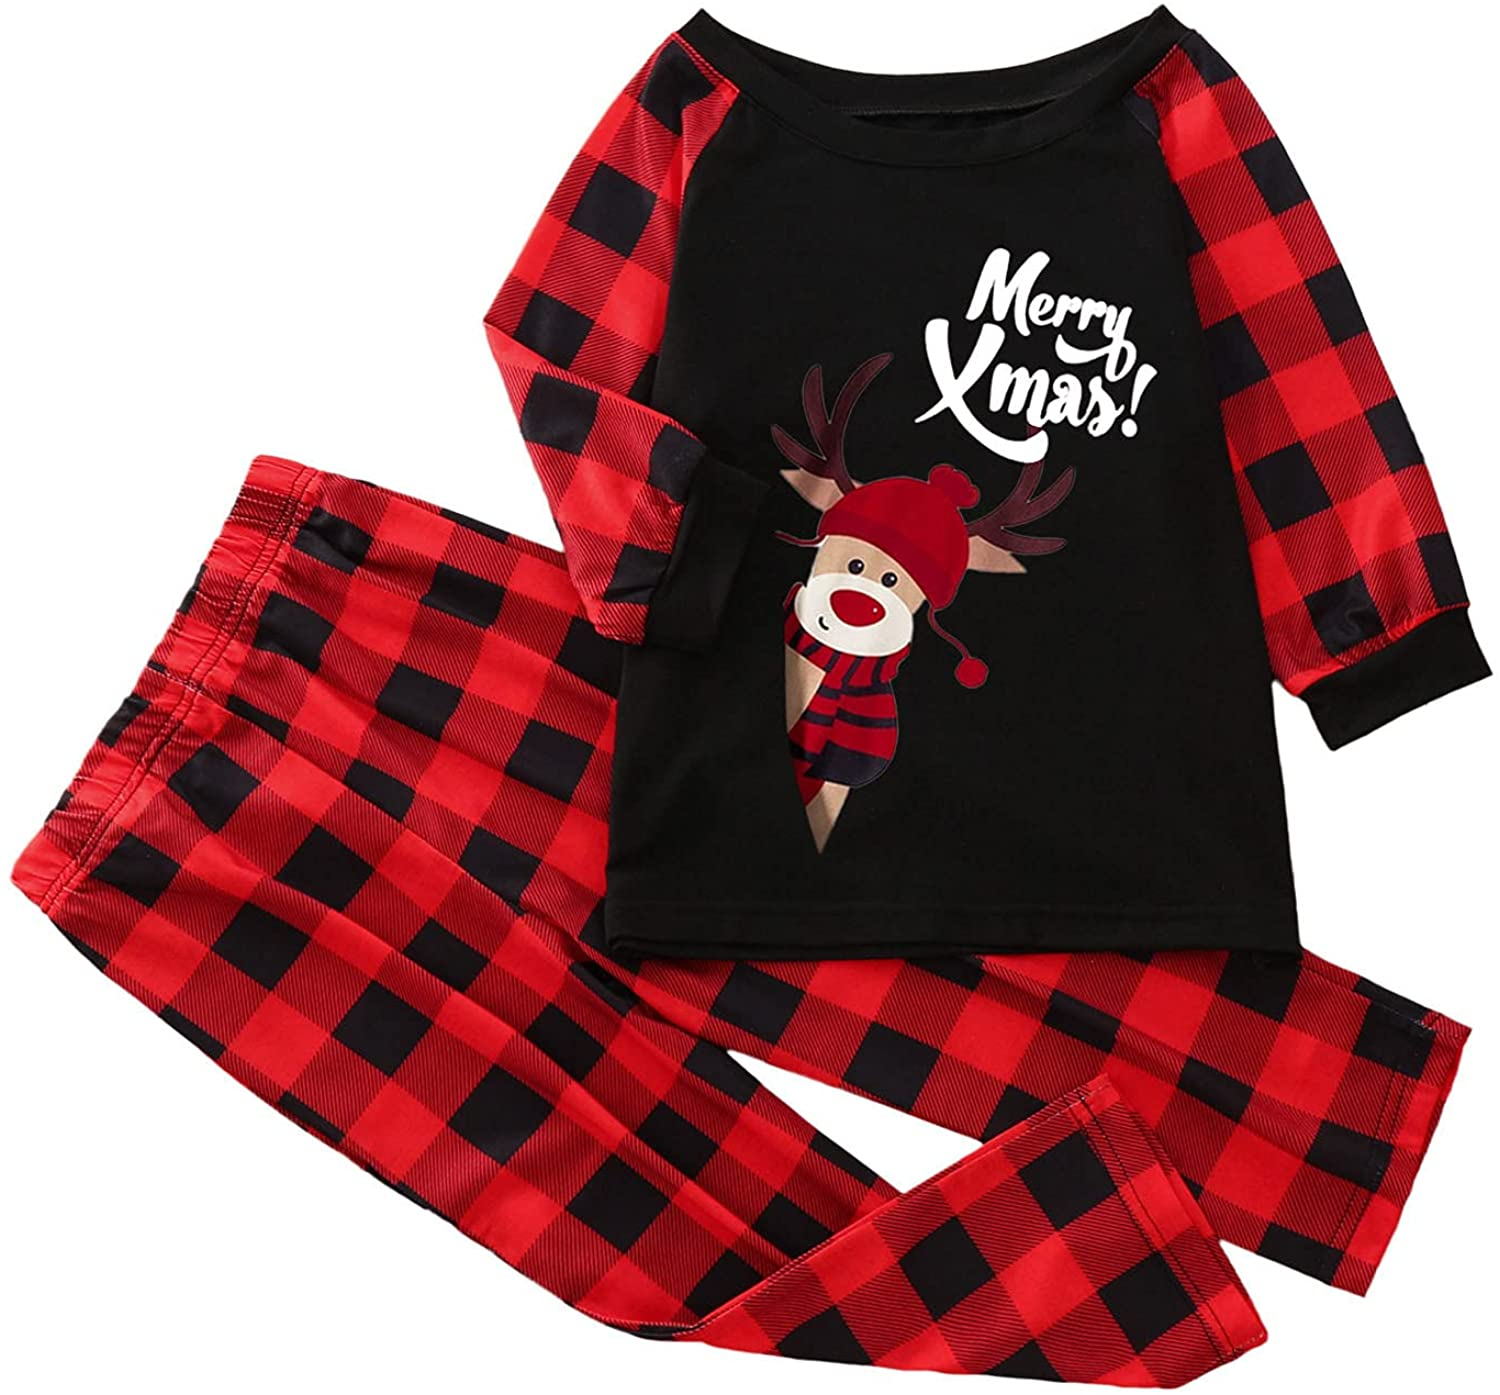 DVCB Christmas Pajamas for Family Round Neck Check Large Size Sleepwear Cute Calf Print Homewear for Kids